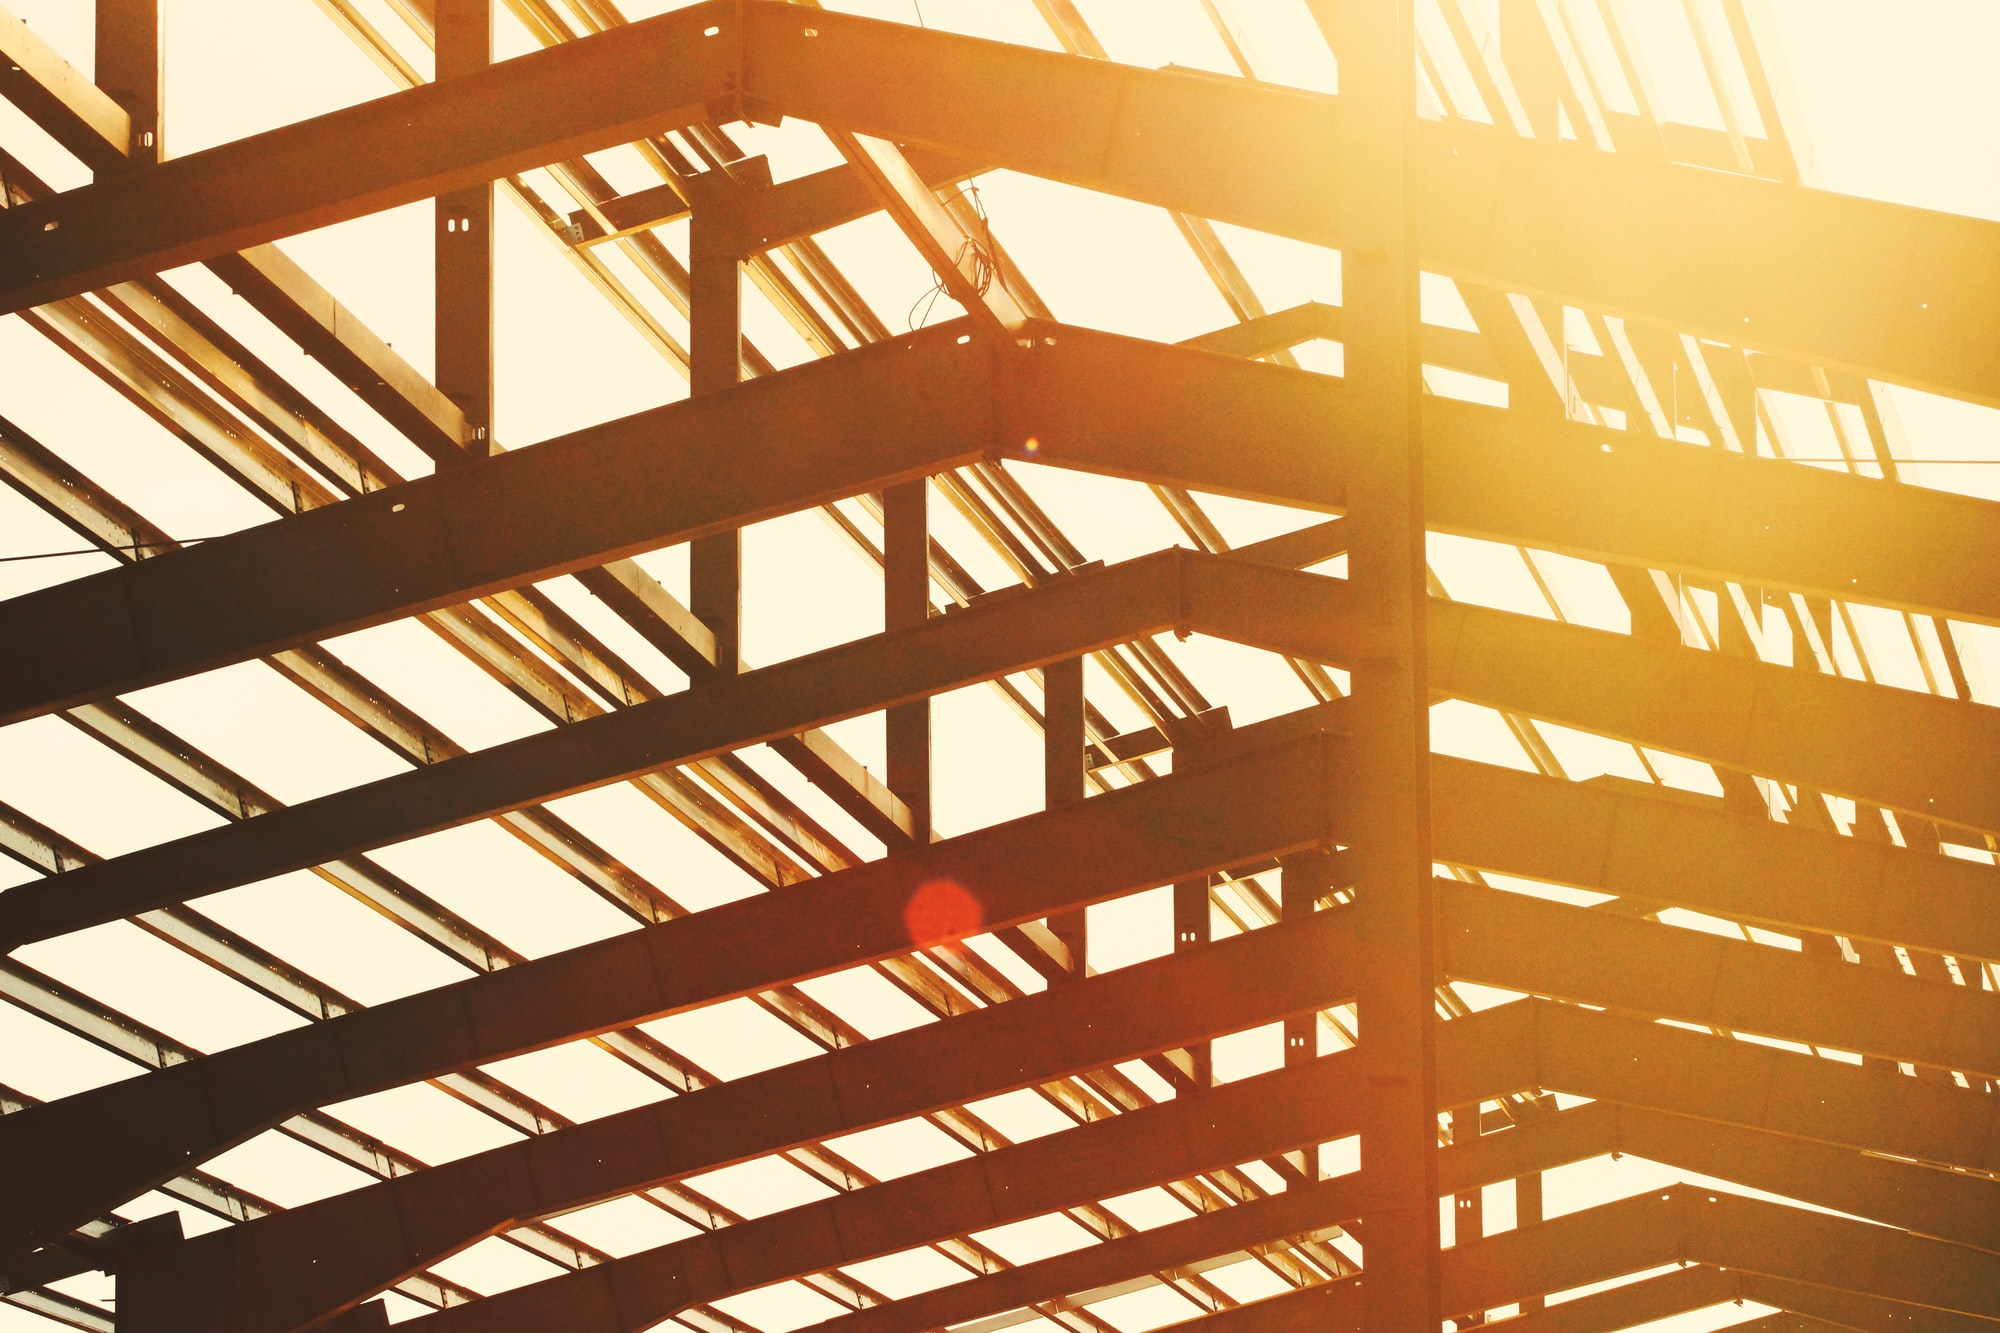 Sunlight shining through the unfinished, steel frame of an under construction building.